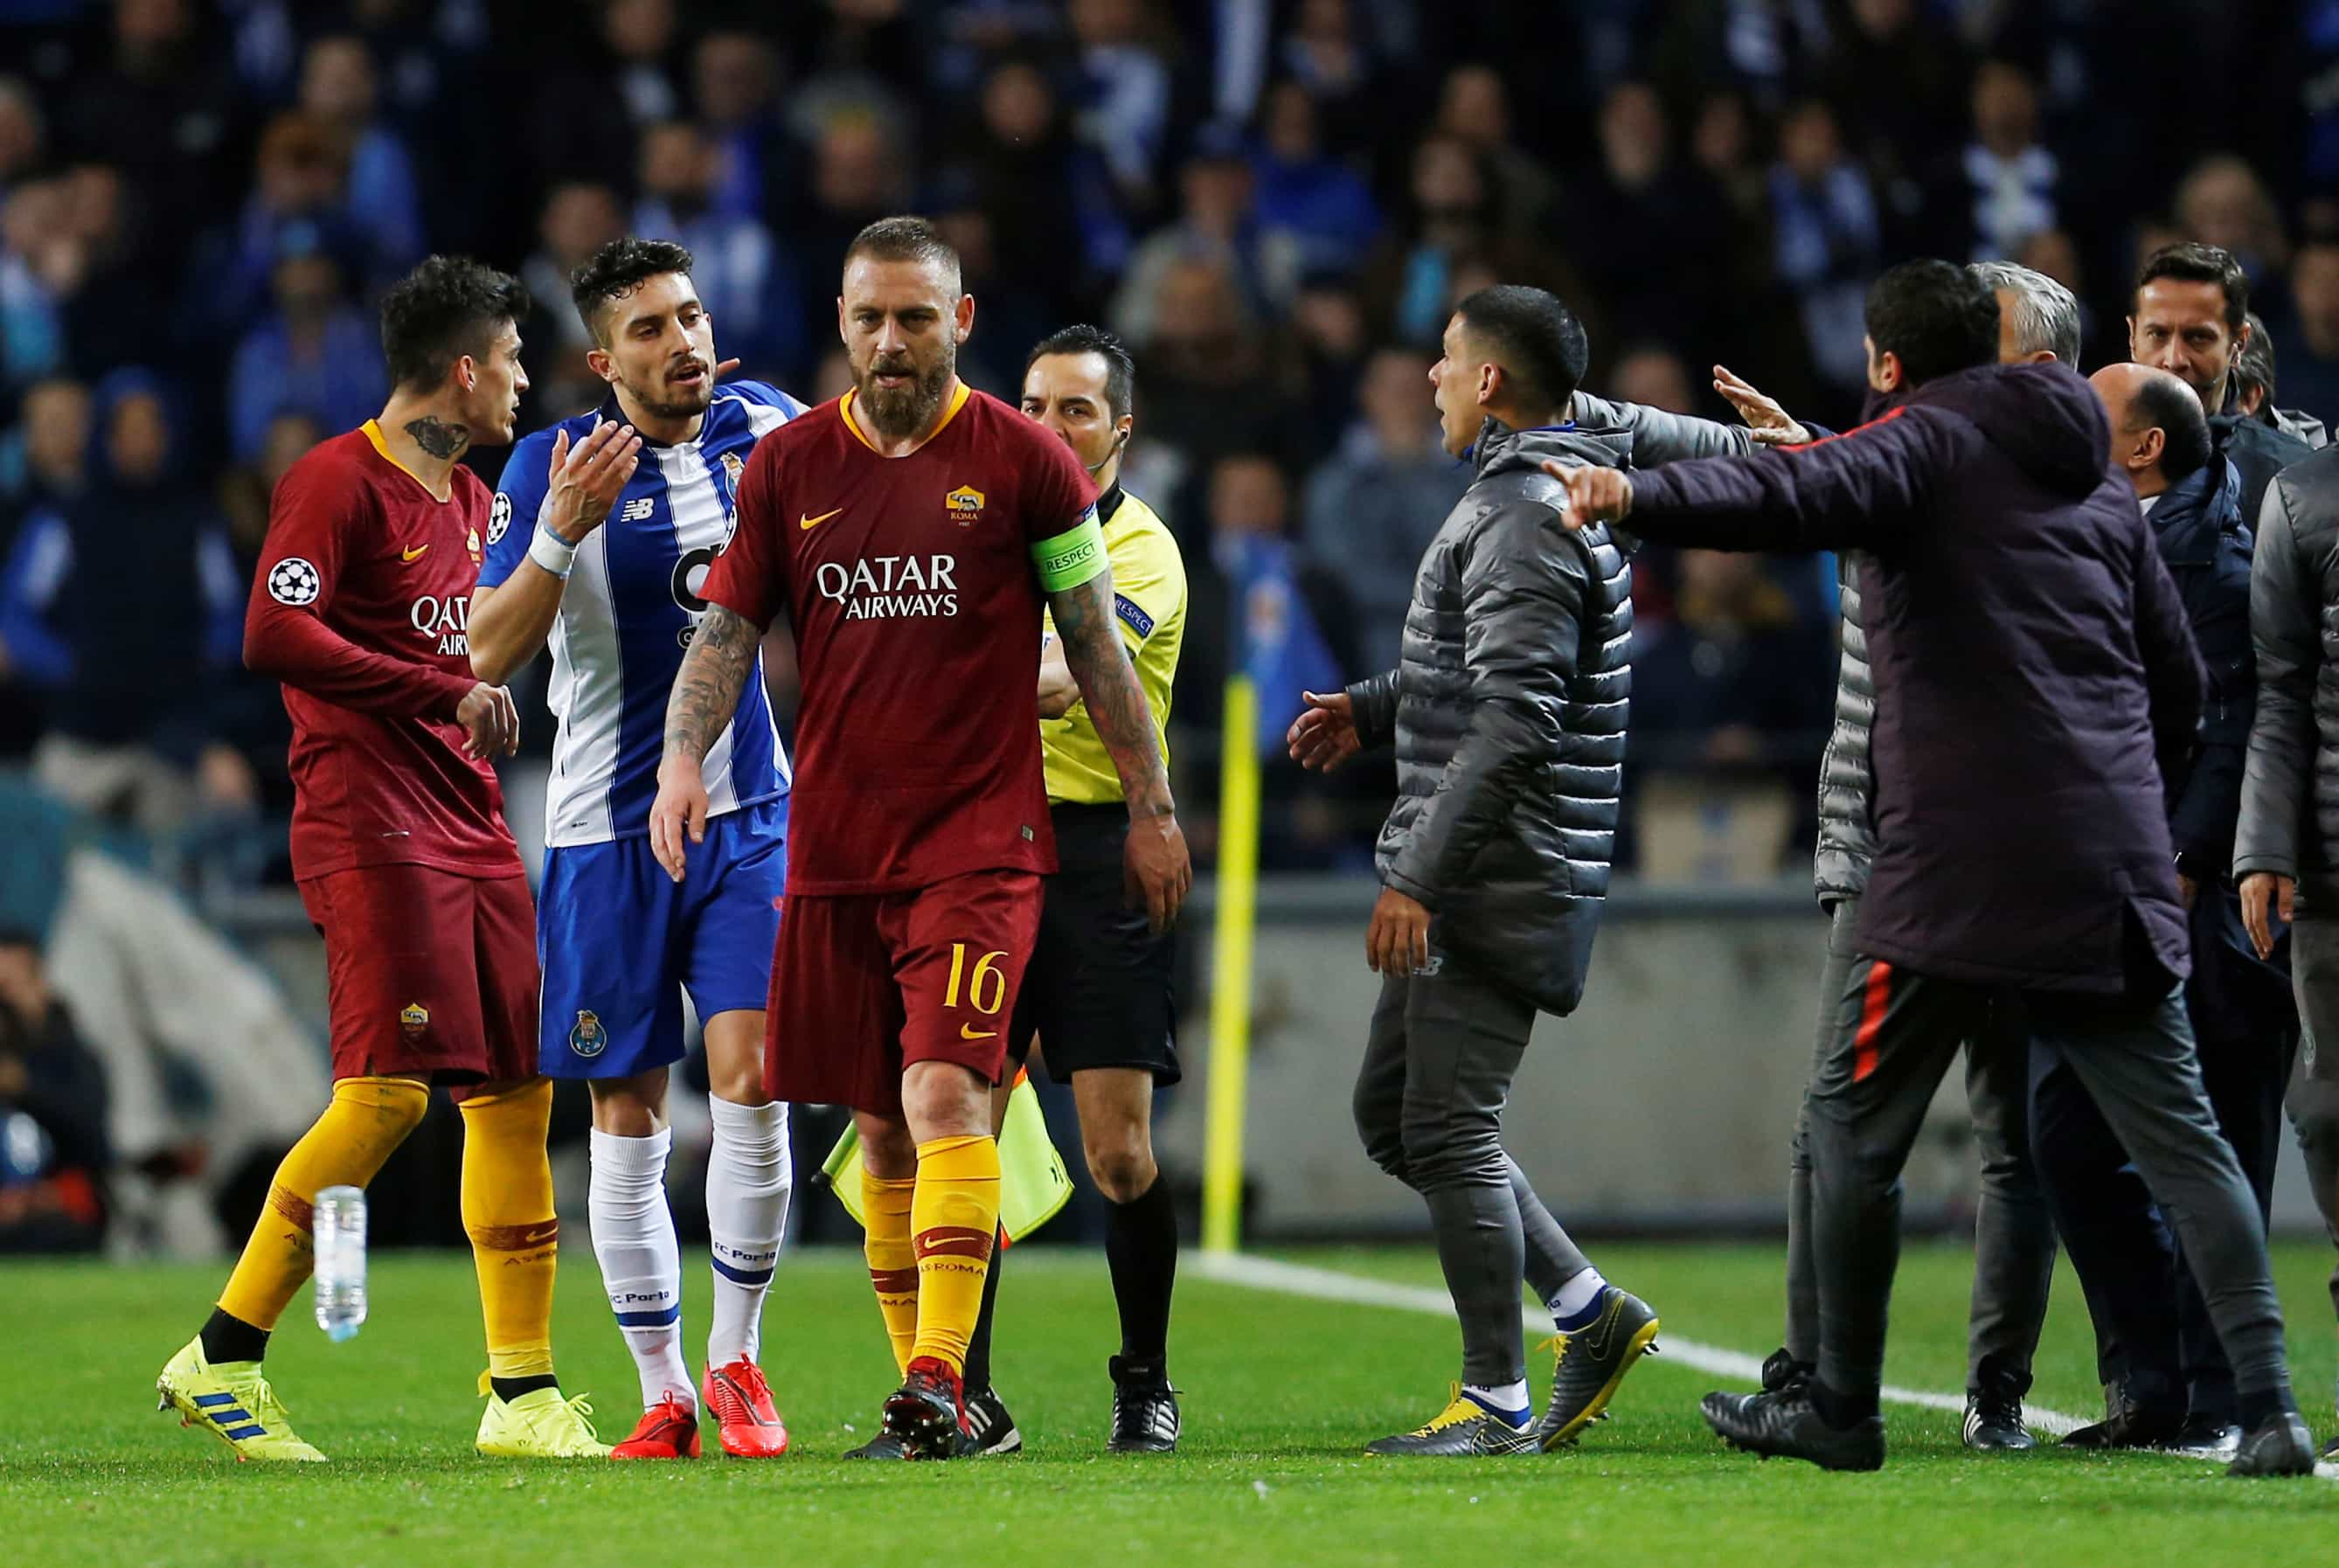 UEFA explica por que não assinalou penálti no final do FC Porto-AS Roma